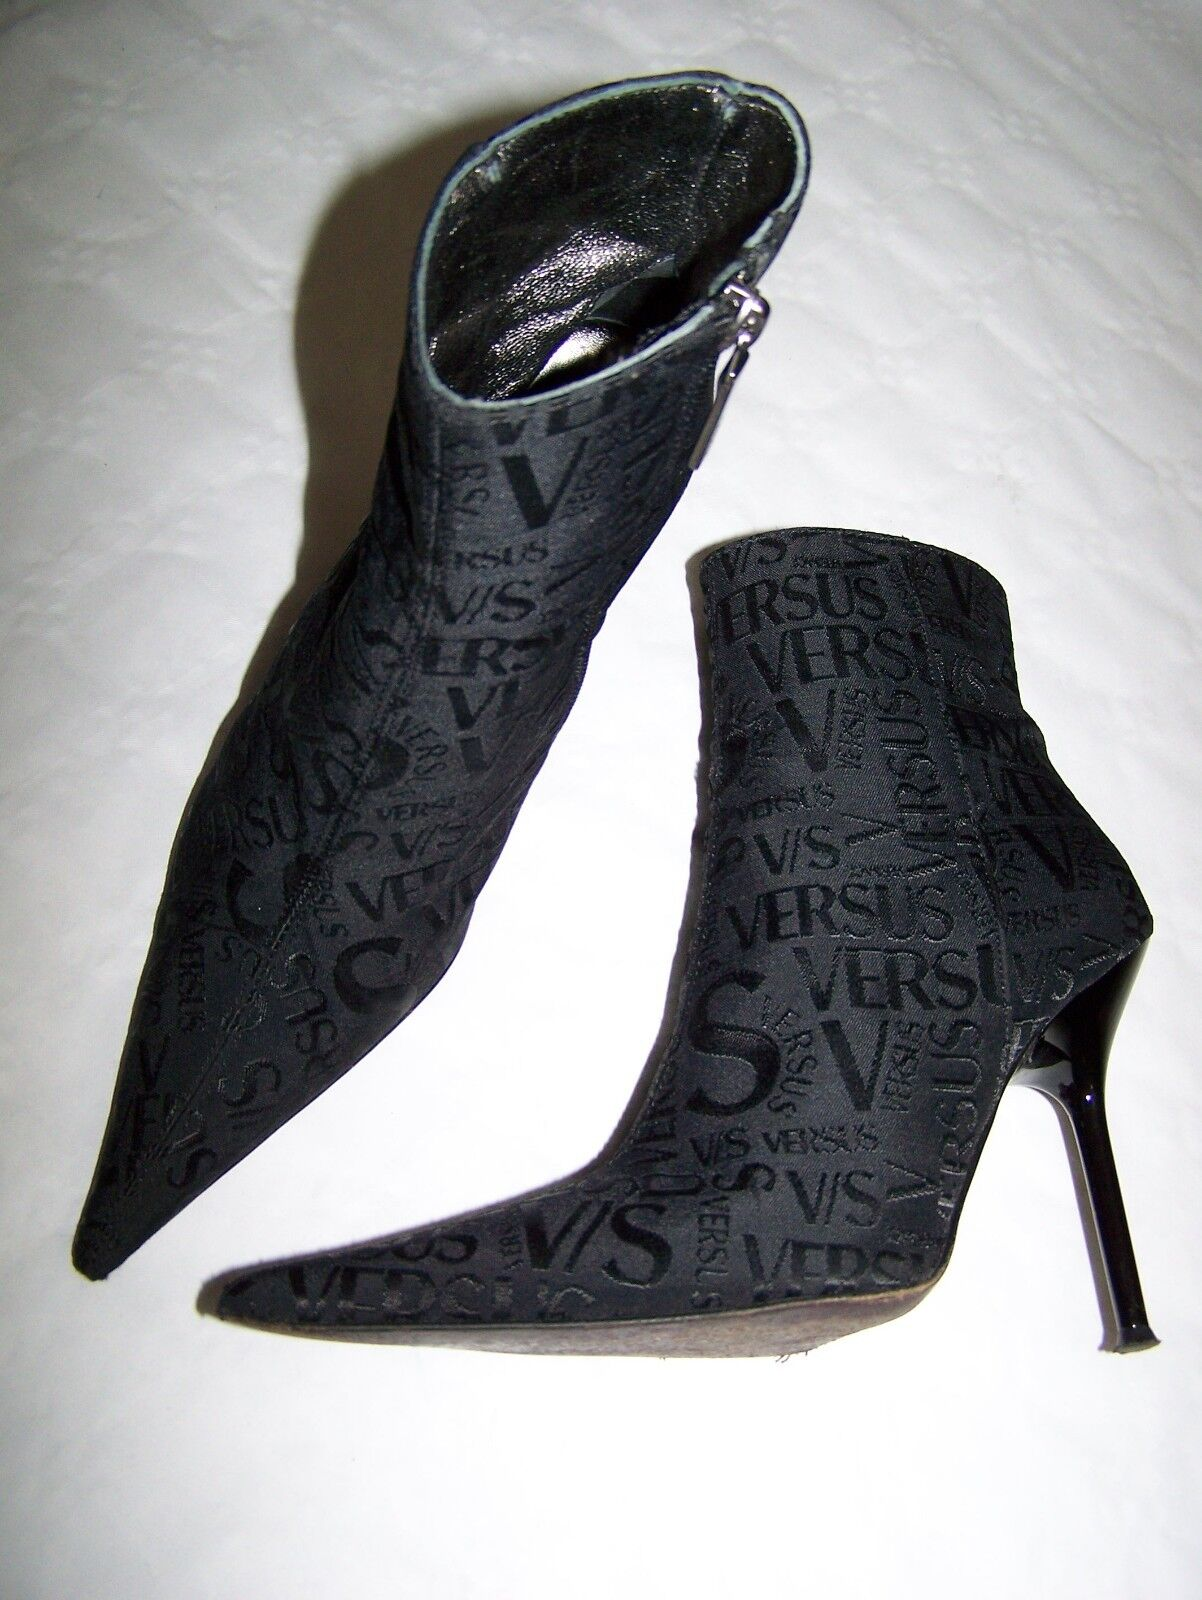 STIVALI TRONCHETTI  VERSUS GIANNI VERSACE  BOOTS  n°37  MADE IN ITALY